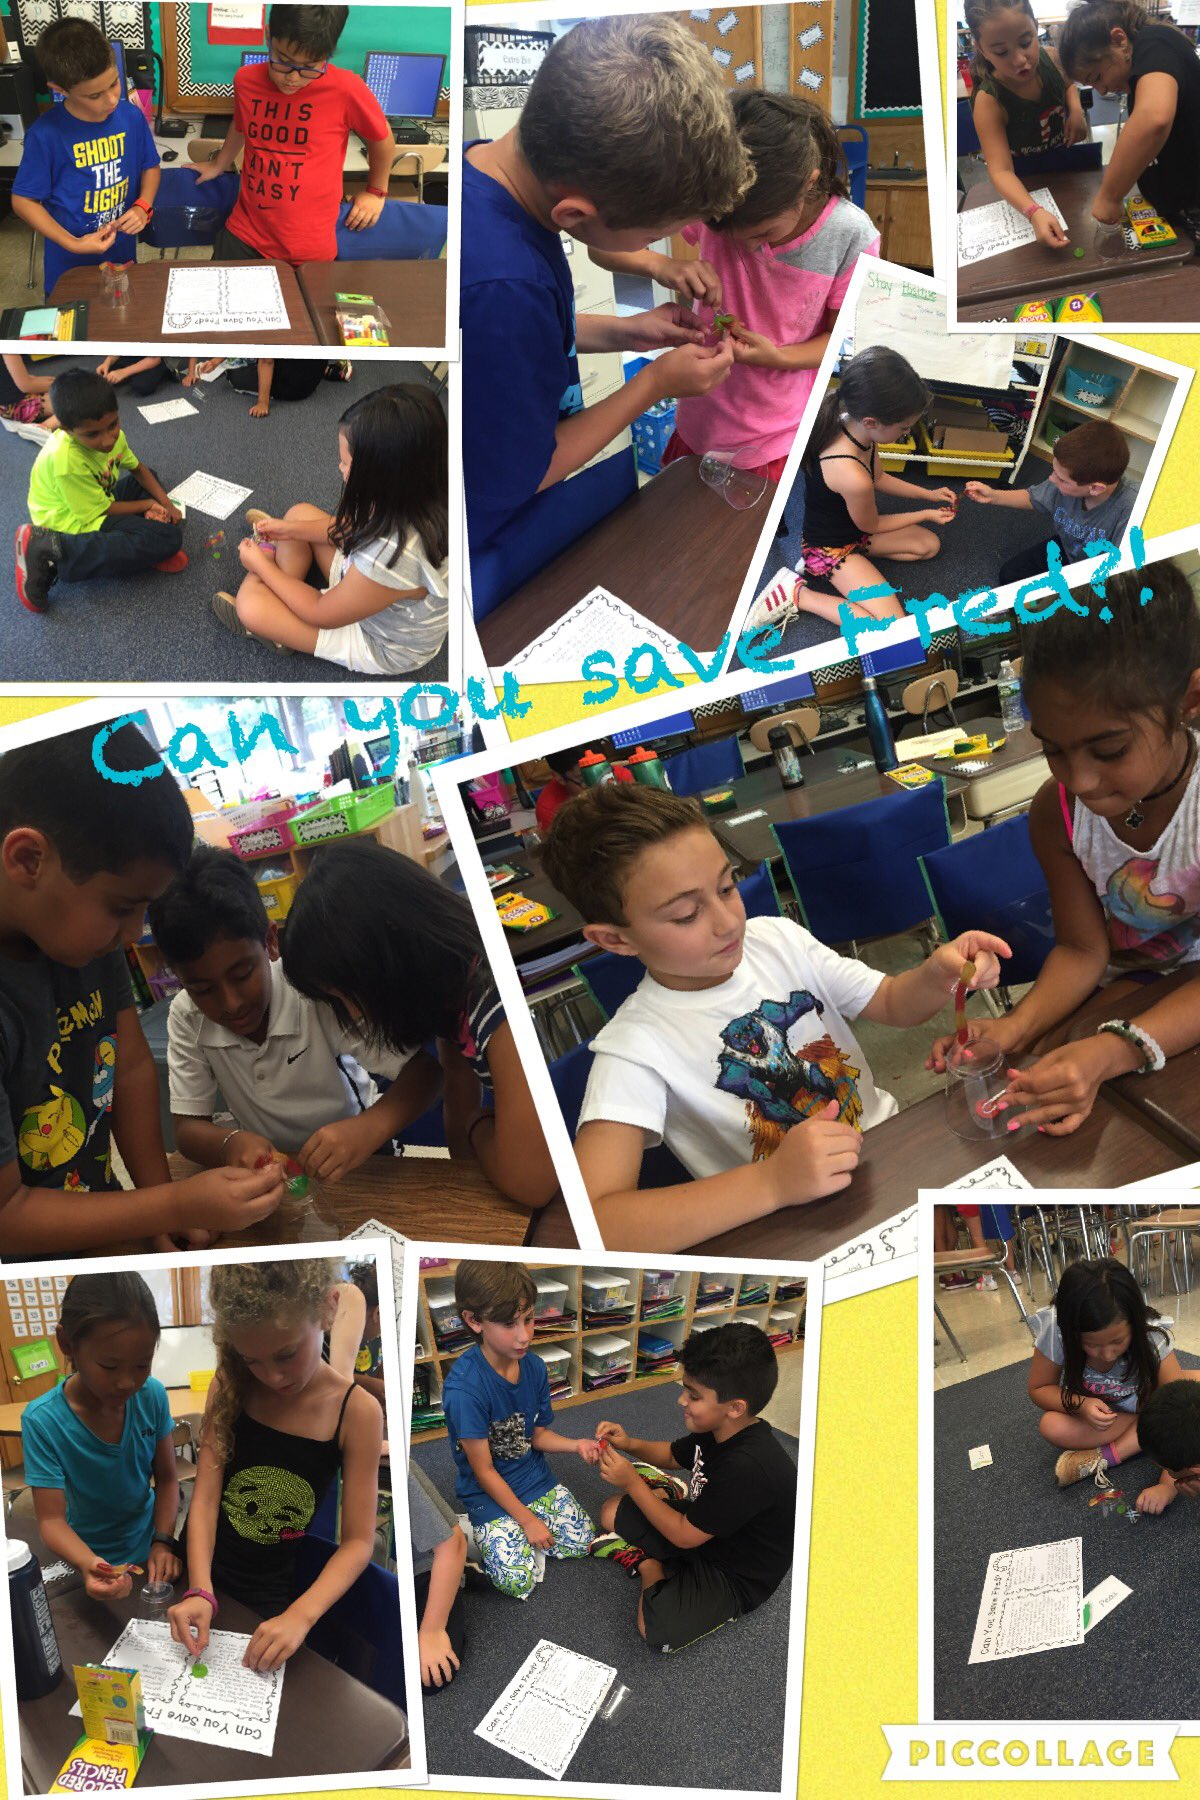 Ss working together to save Fred!Strengthening our teamwork and communicating skills! #seamanstrength @Ivysherman https://t.co/dBT8WTgyMt